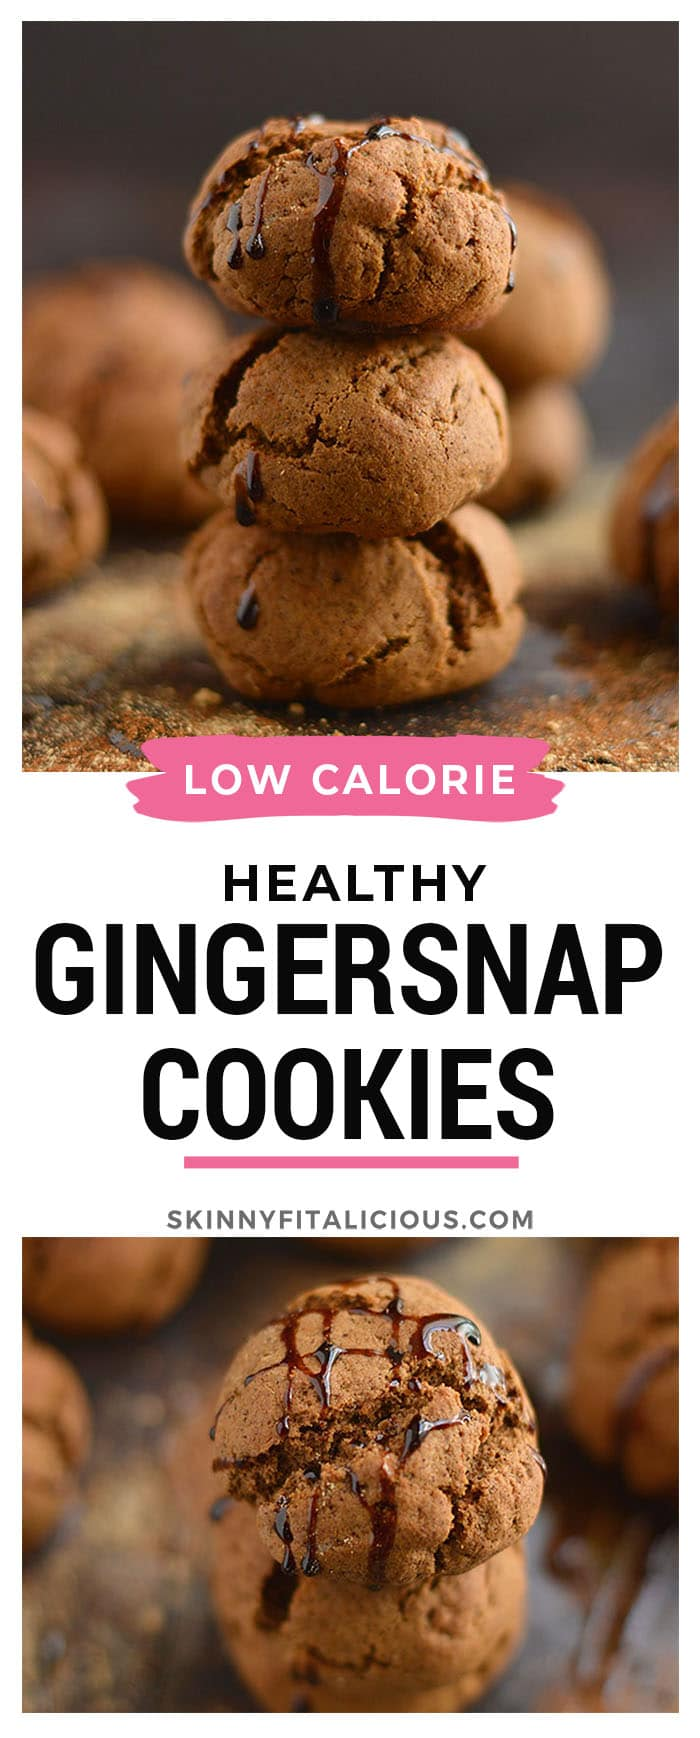 Healthy Protein Gingersnaps only 100 calories! Made low in sugar and big on taste, these doughy cookies are winter baking must haves.